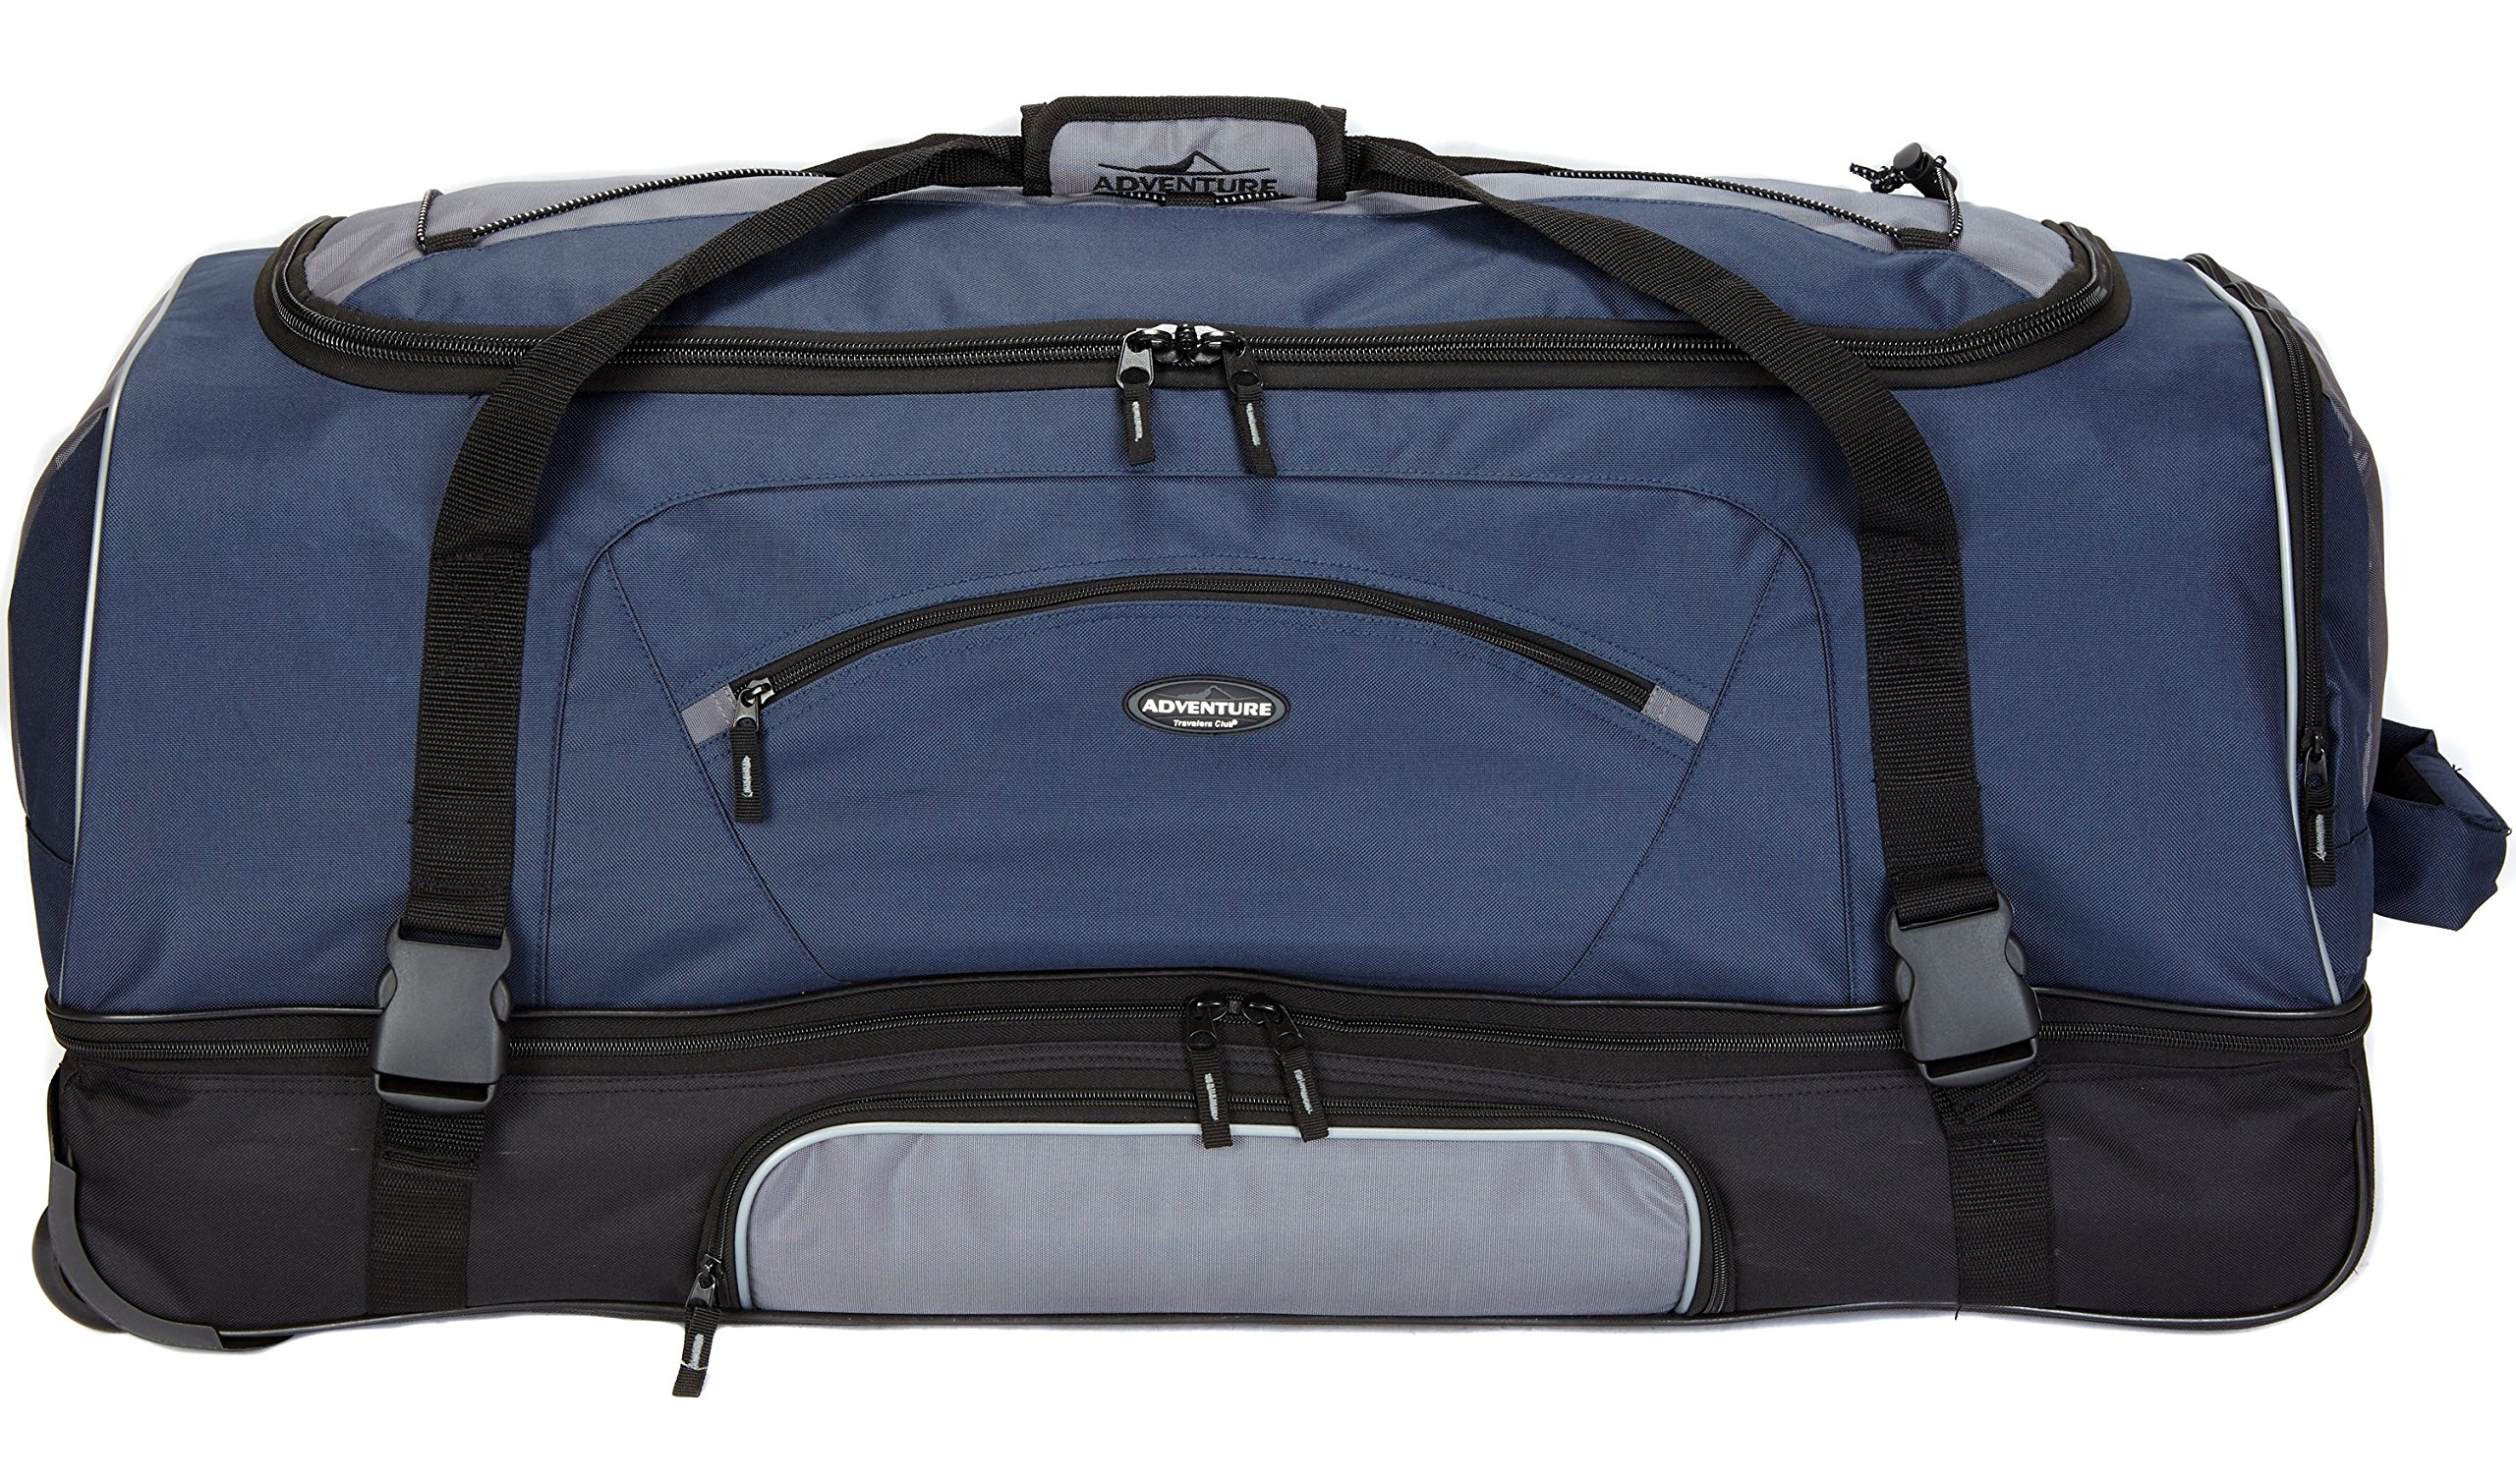 36'' Adventure by Travelers Club Luggage Rolling 2-Tone Multi-Pocket X-Large Packing Capacity Duffel with BONUS Bottom Compartment, Navy and Gray Color Option